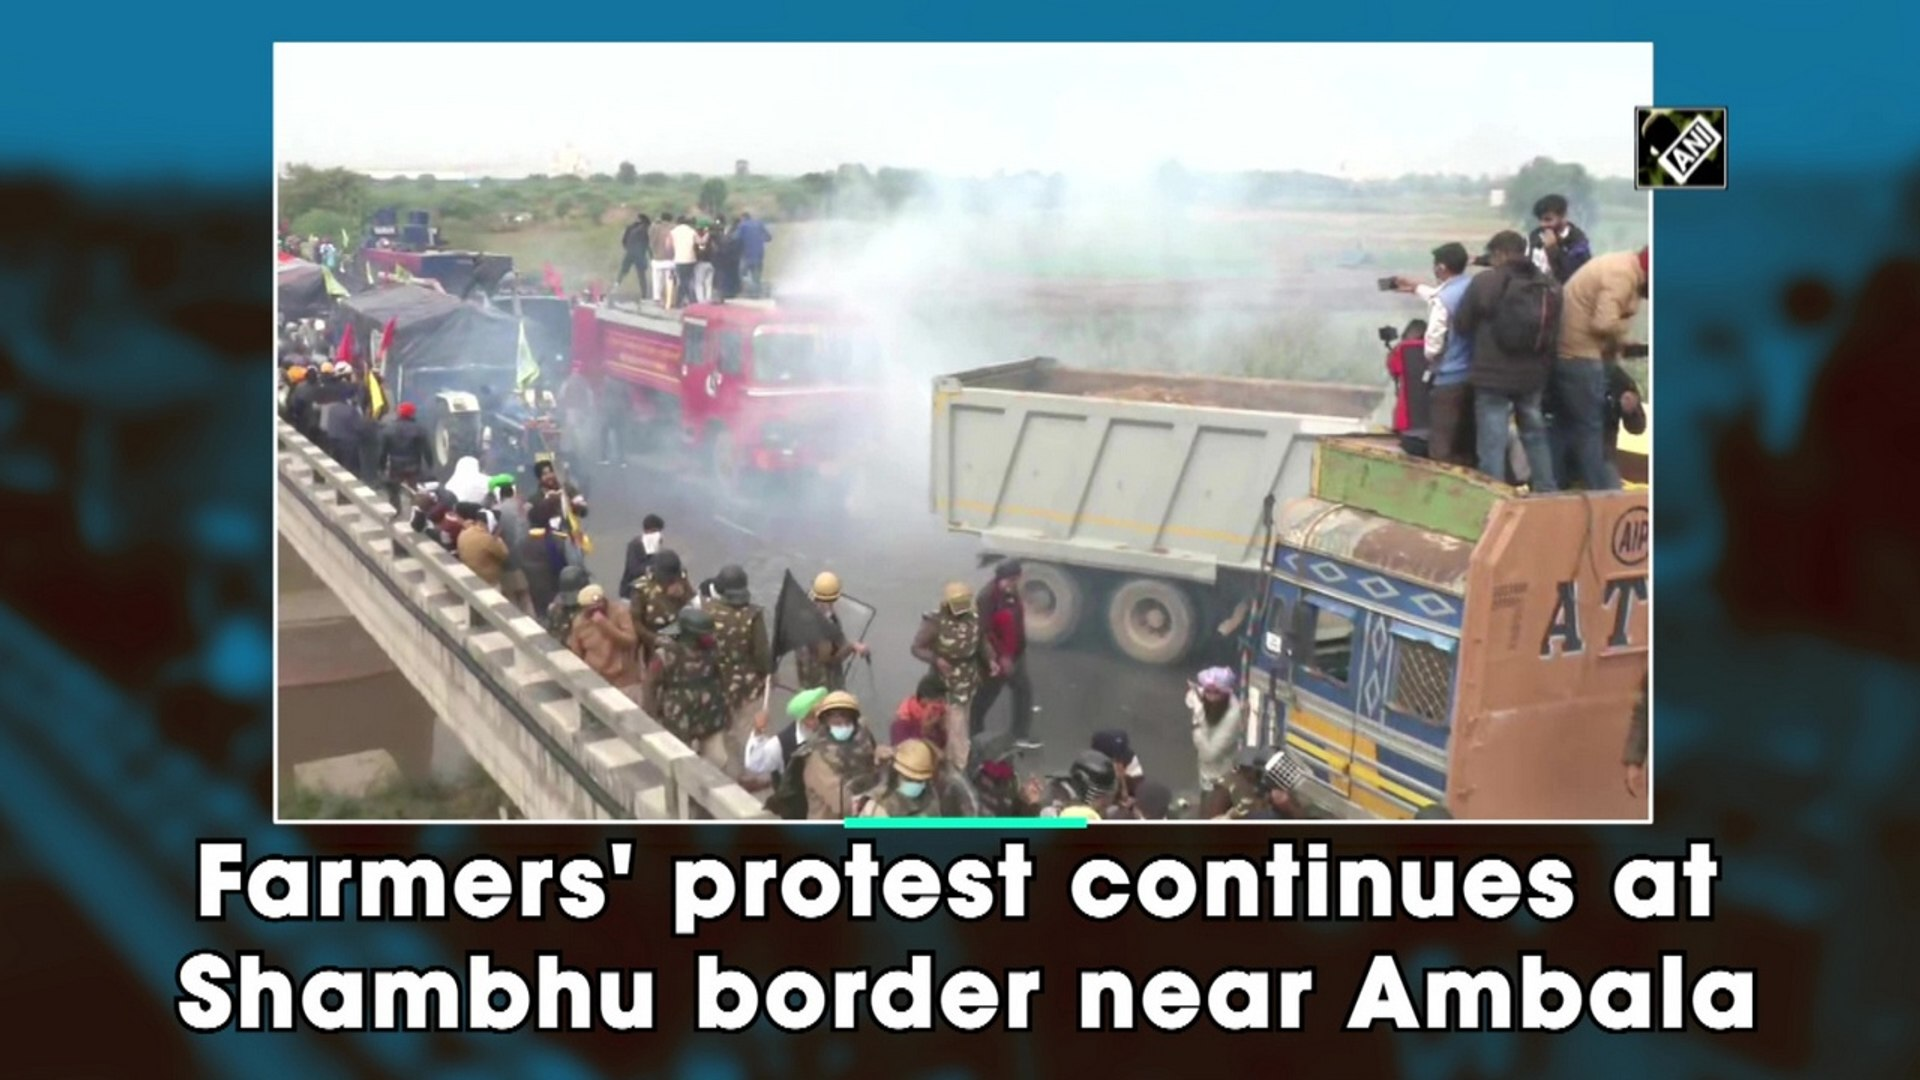 Farmers' protest continues at Shambhu border near Ambala